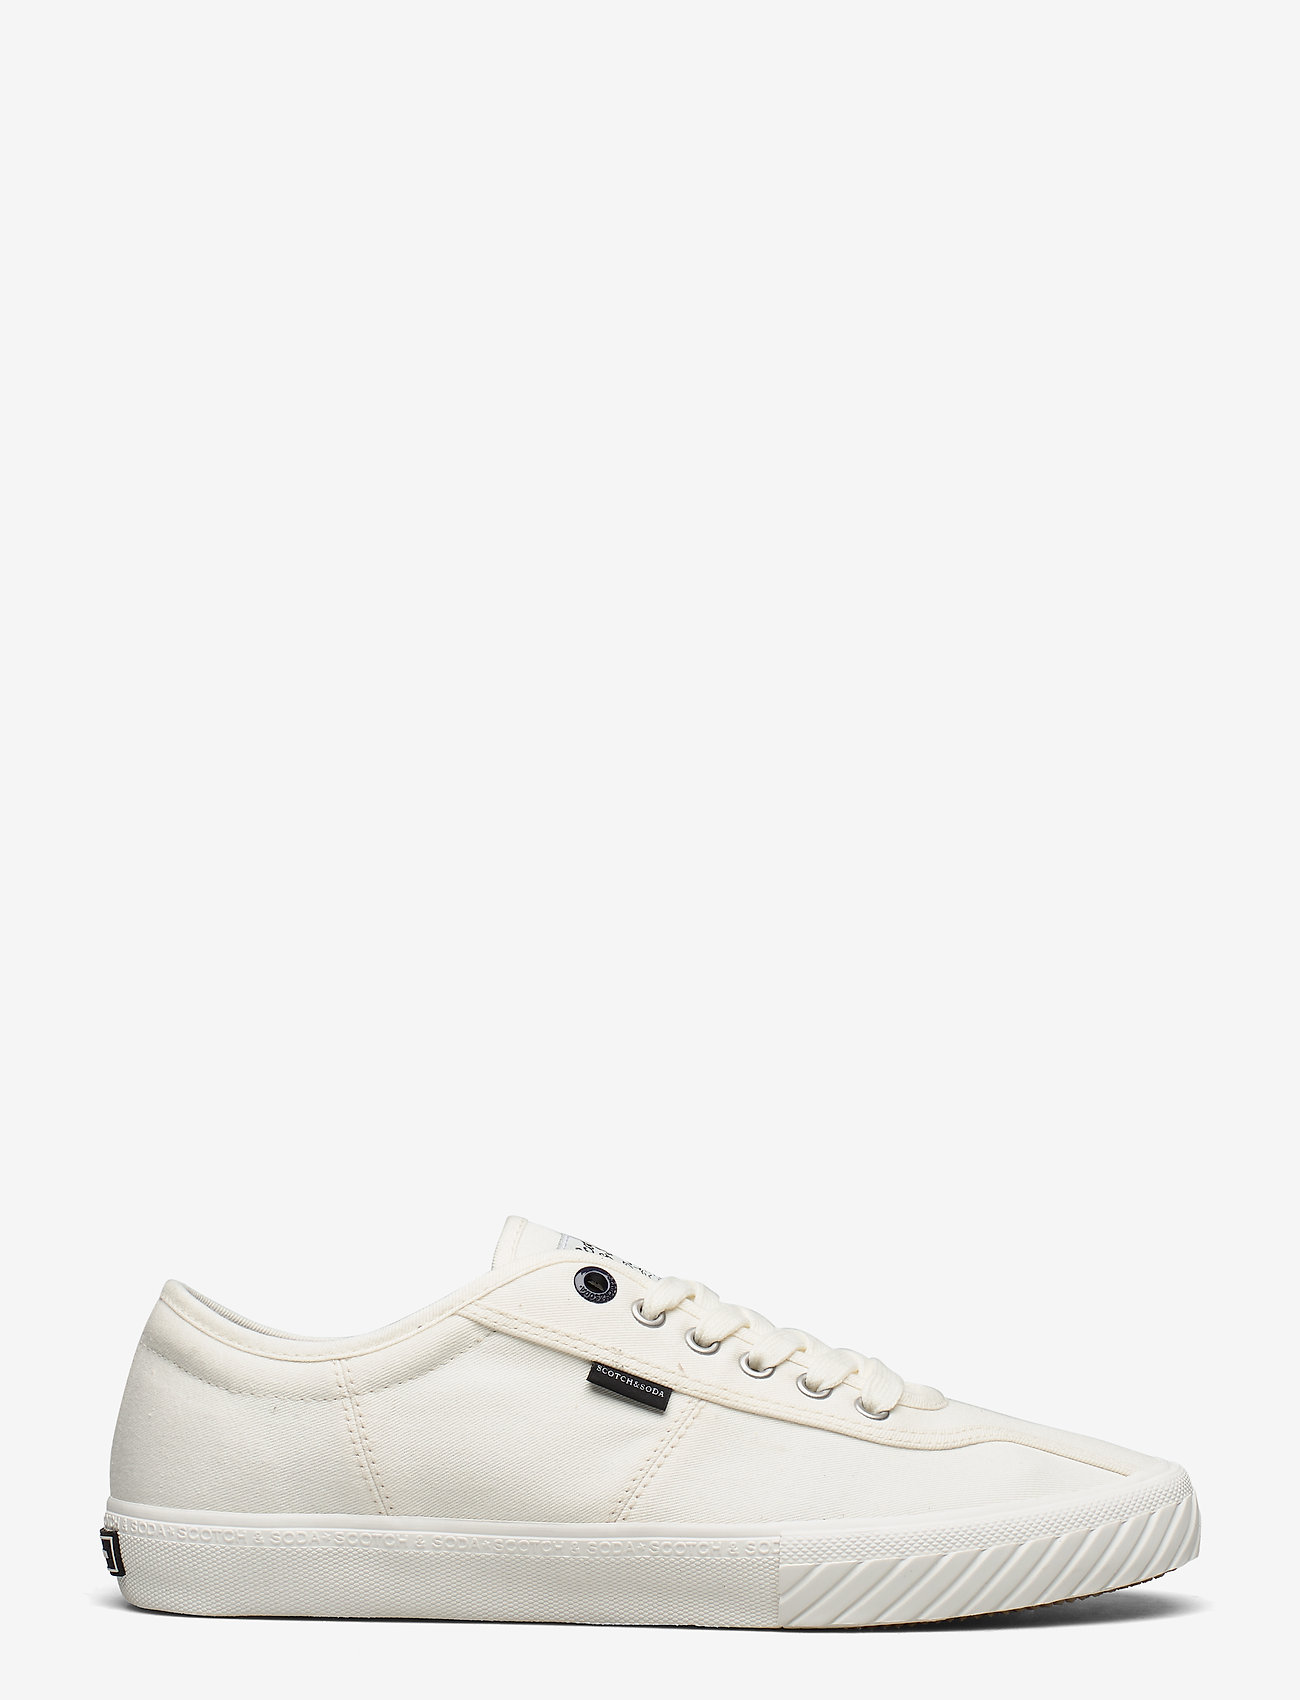 Scotch & Soda Shoes - Parcifal Low lace - low tops - off white - 1